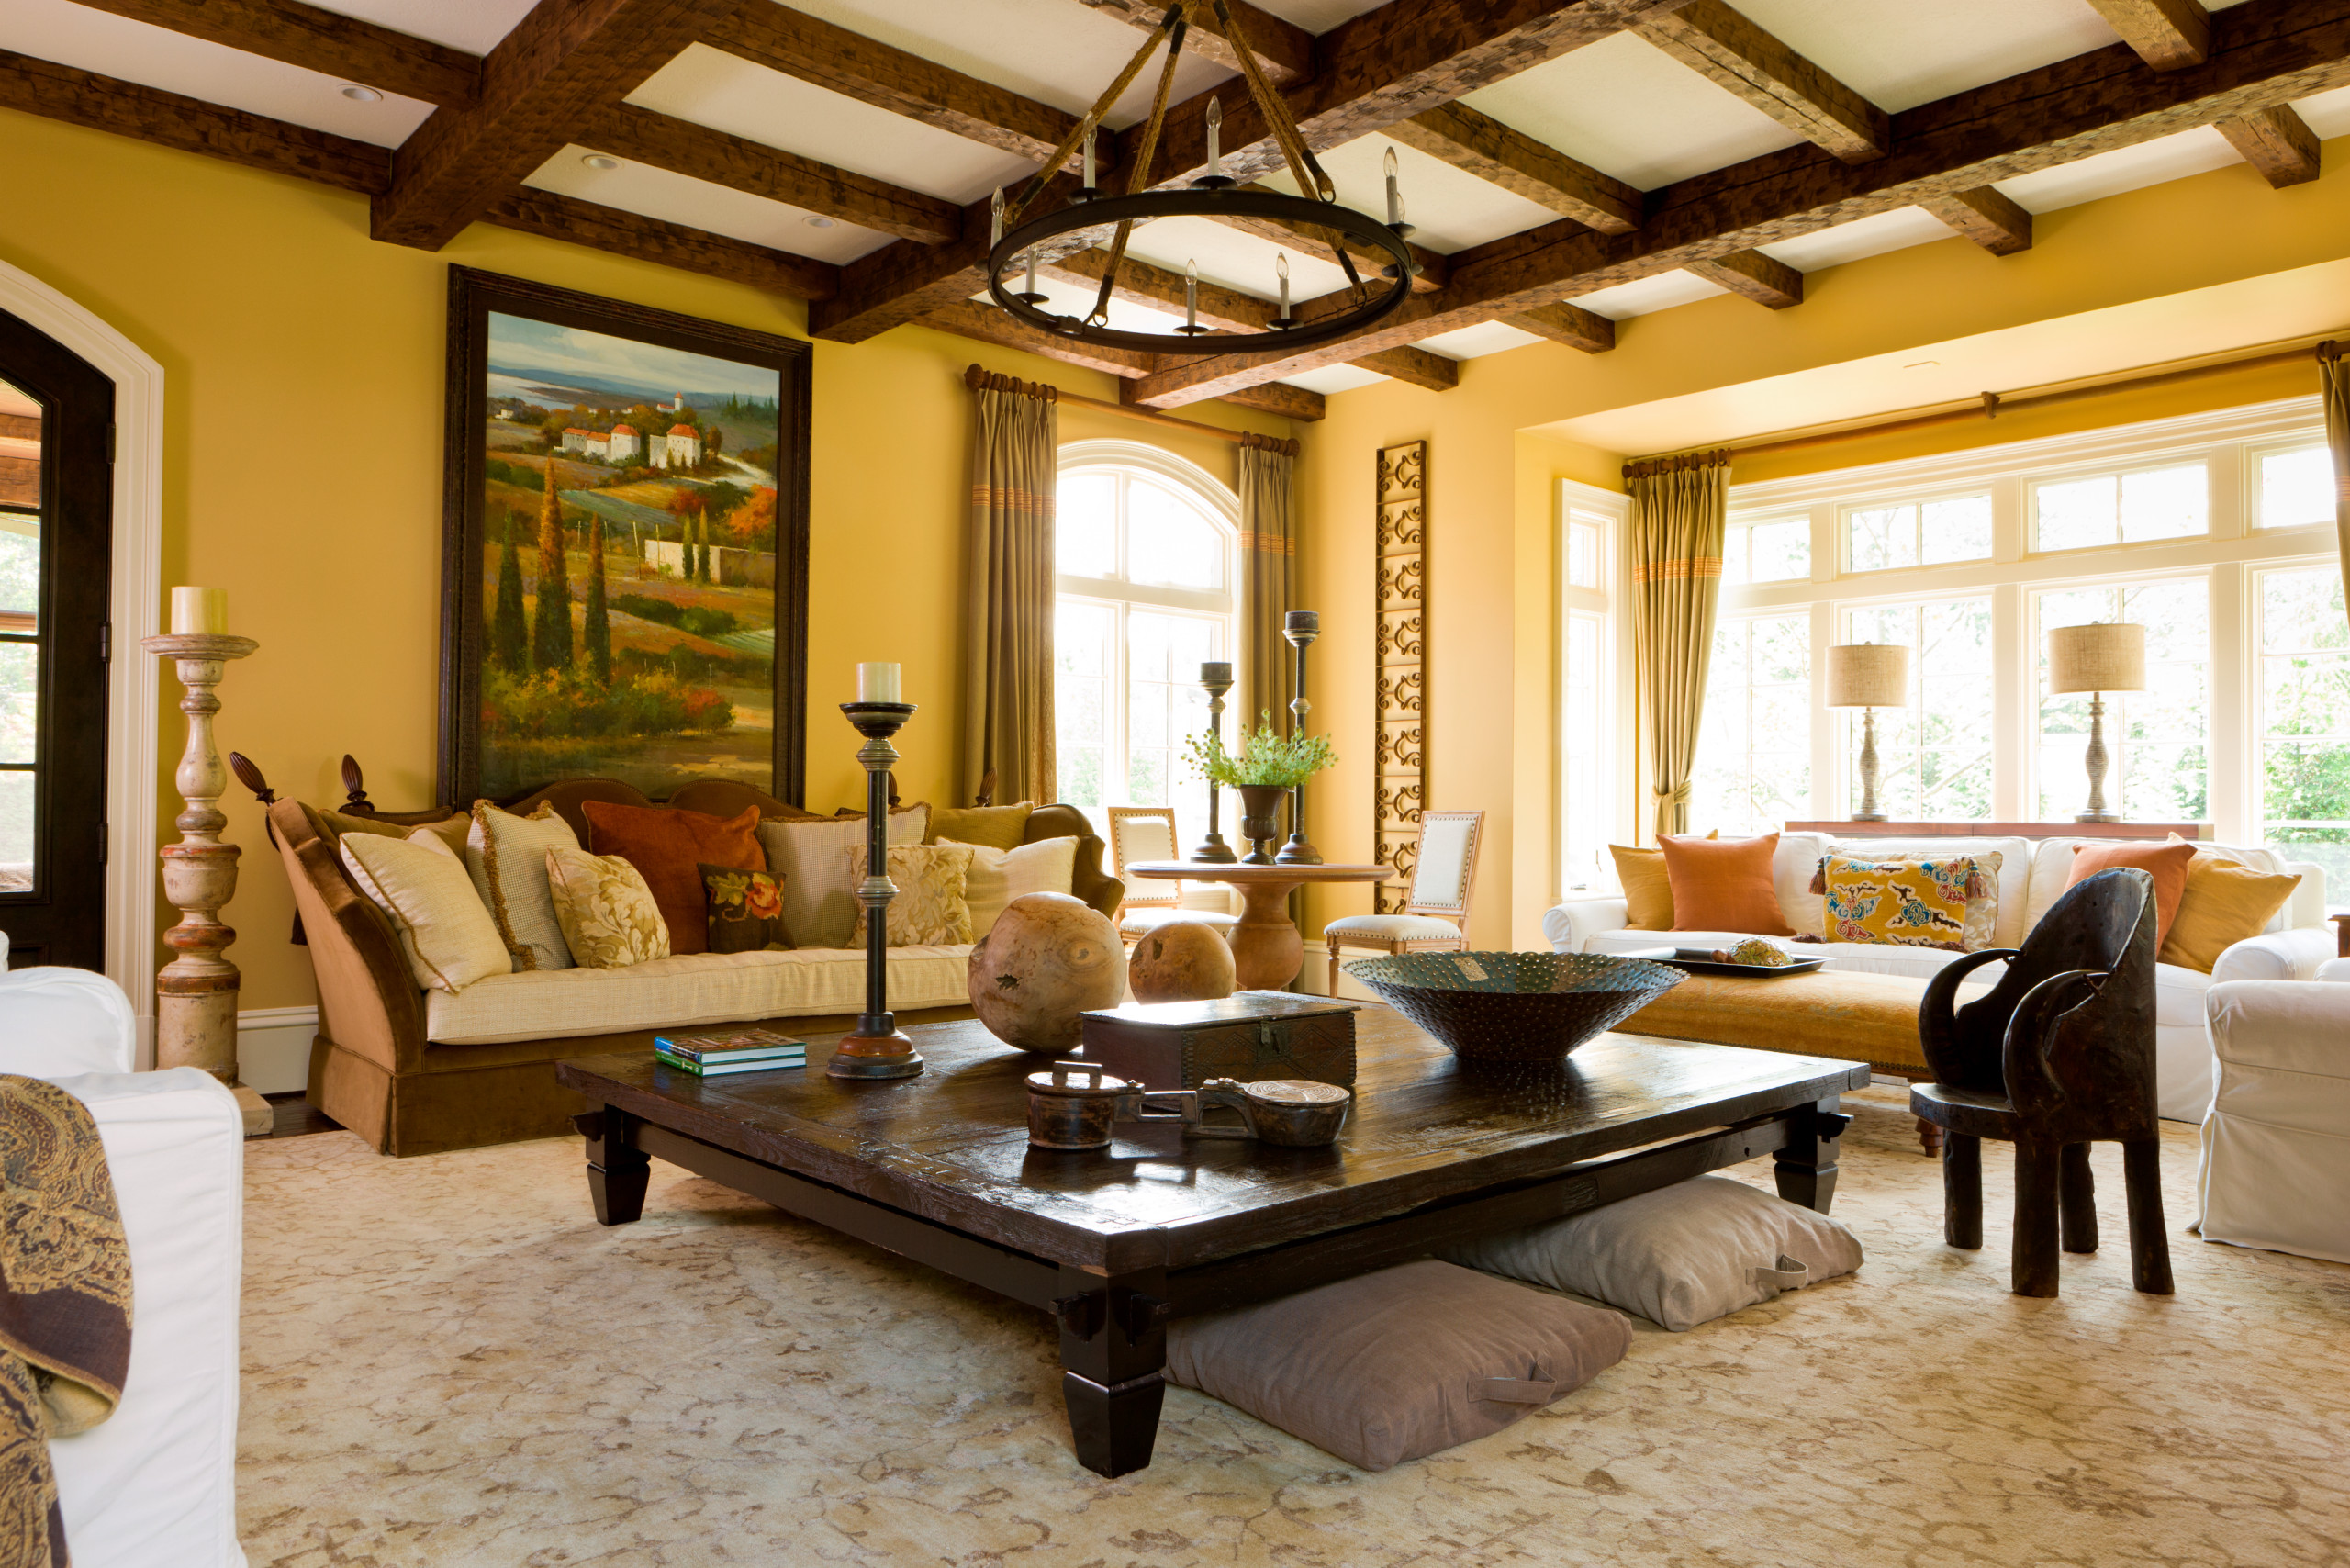 75 Beautiful Yellow Living Room Pictures Ideas December 2020 Houzz